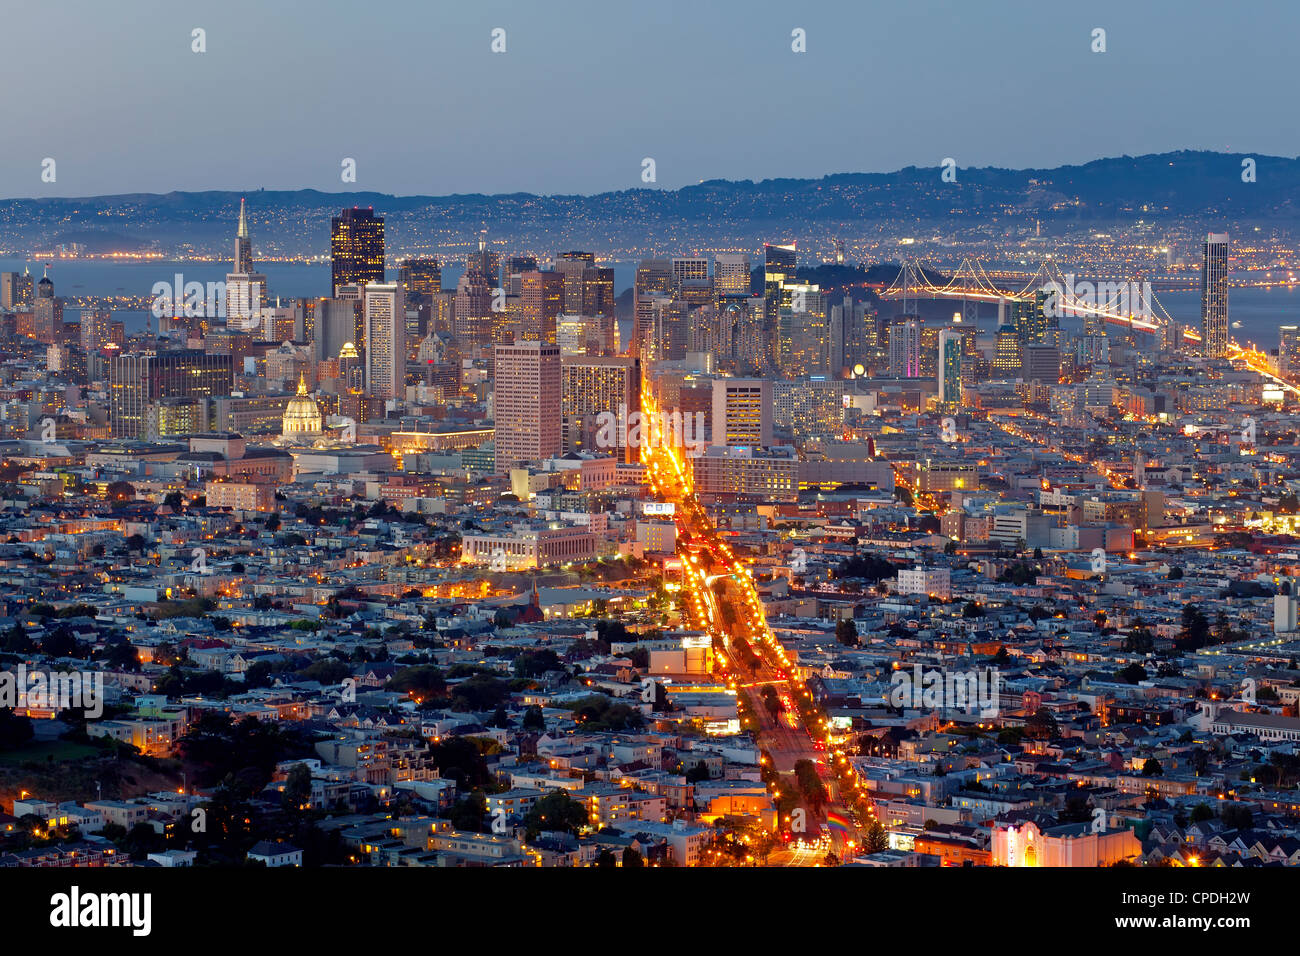 City skyline viewed from Twin Peaks, San Francisco, California, United States of America, North America - Stock Image